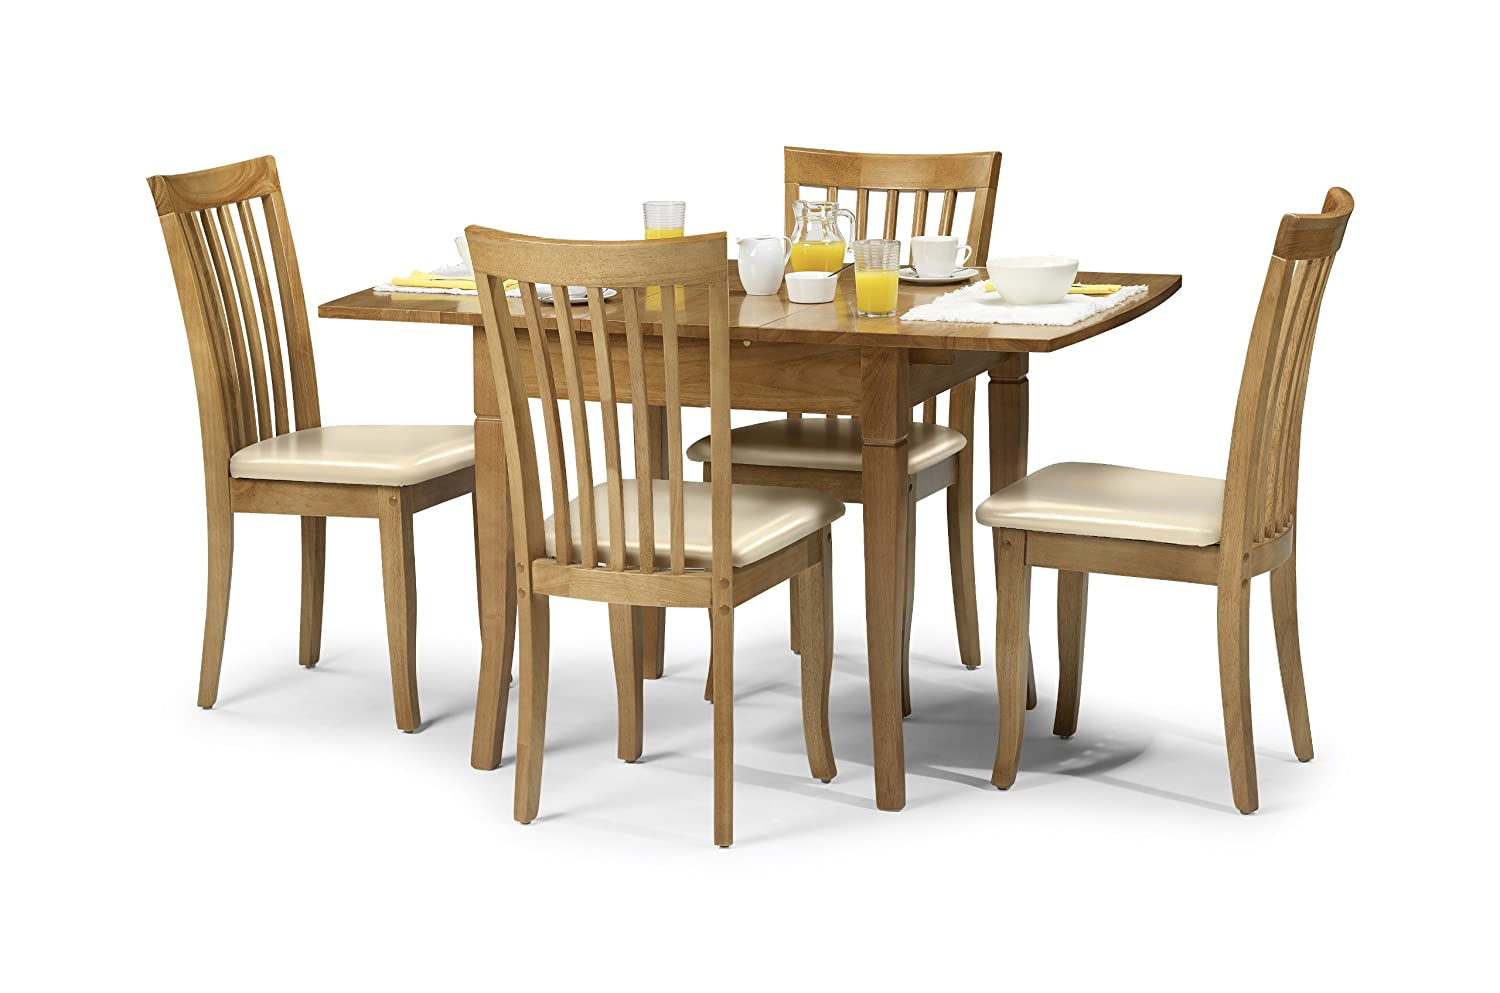 Julian Bowen Newbury Extending Dining Table Set Maple Colour Table and 4 Chairs Amazon.co.uk Kitchen u0026 Home  sc 1 st  Amazon UK & Julian Bowen Newbury Extending Dining Table Set Maple Colour Table ...